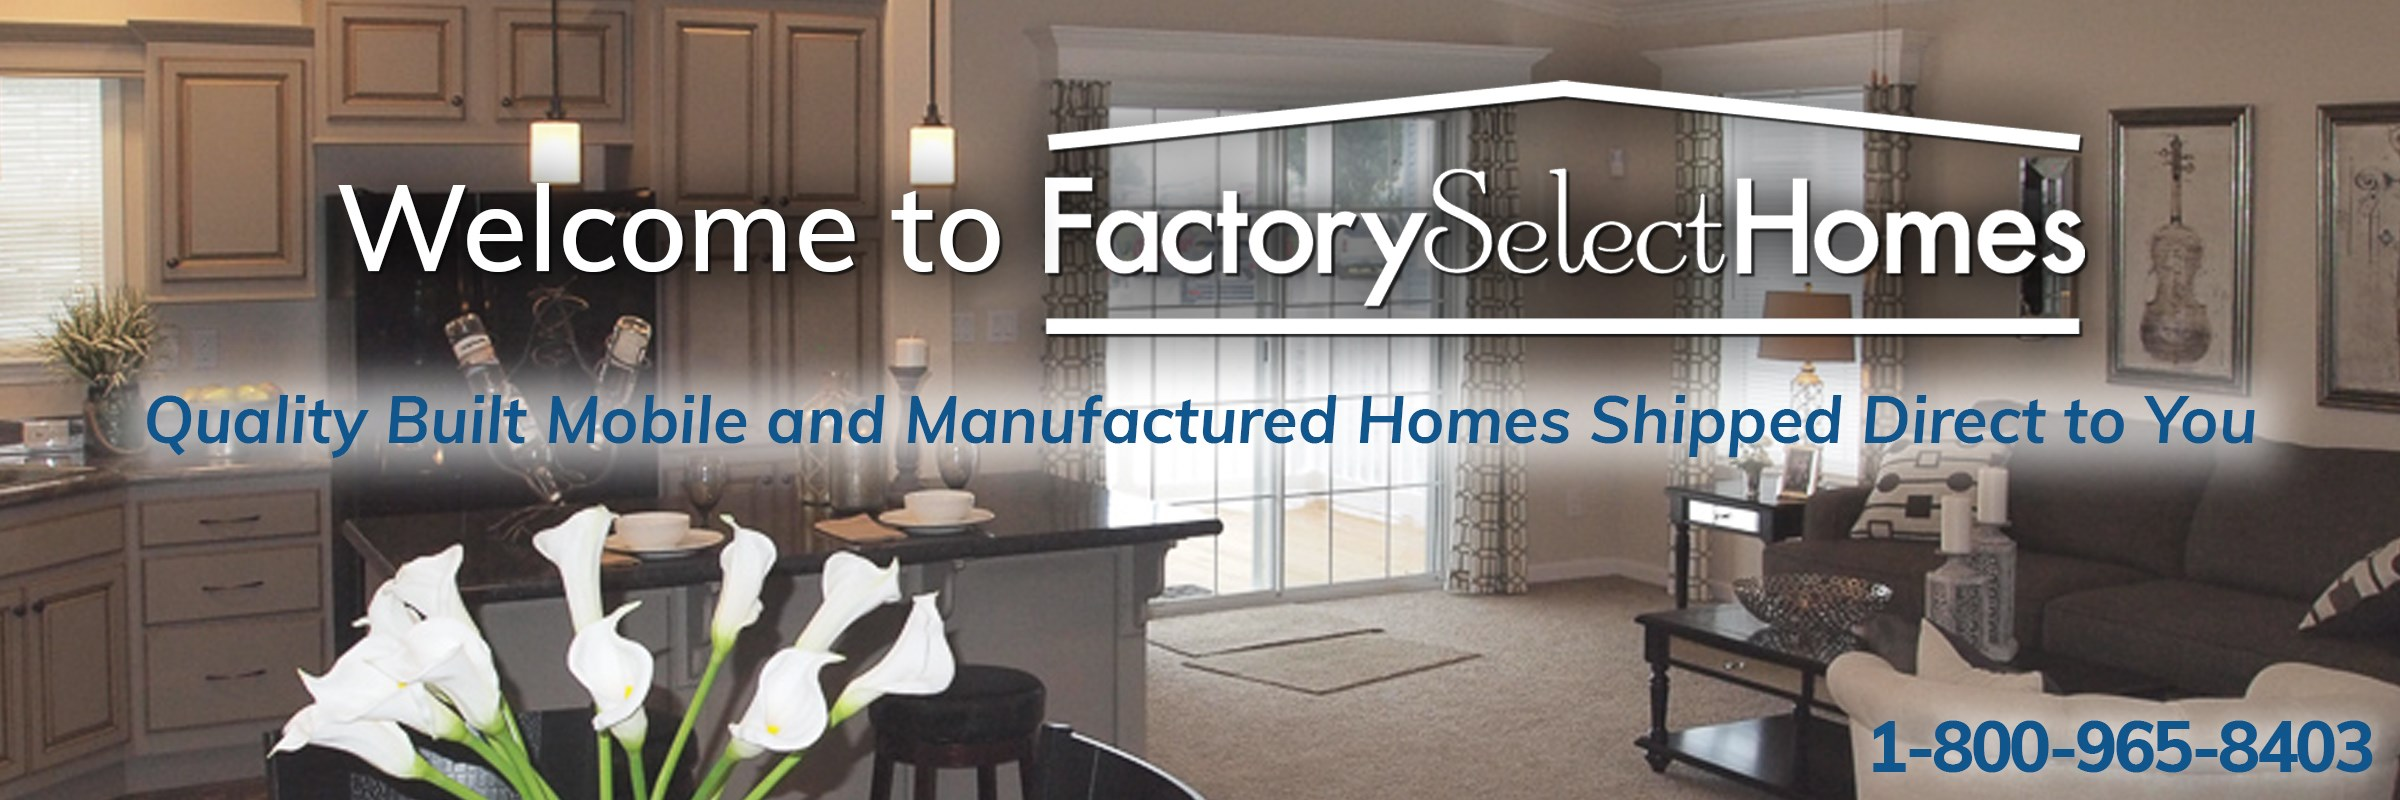 Factory Select Homes | Mobile Home Dealer Brooksville FL | Home